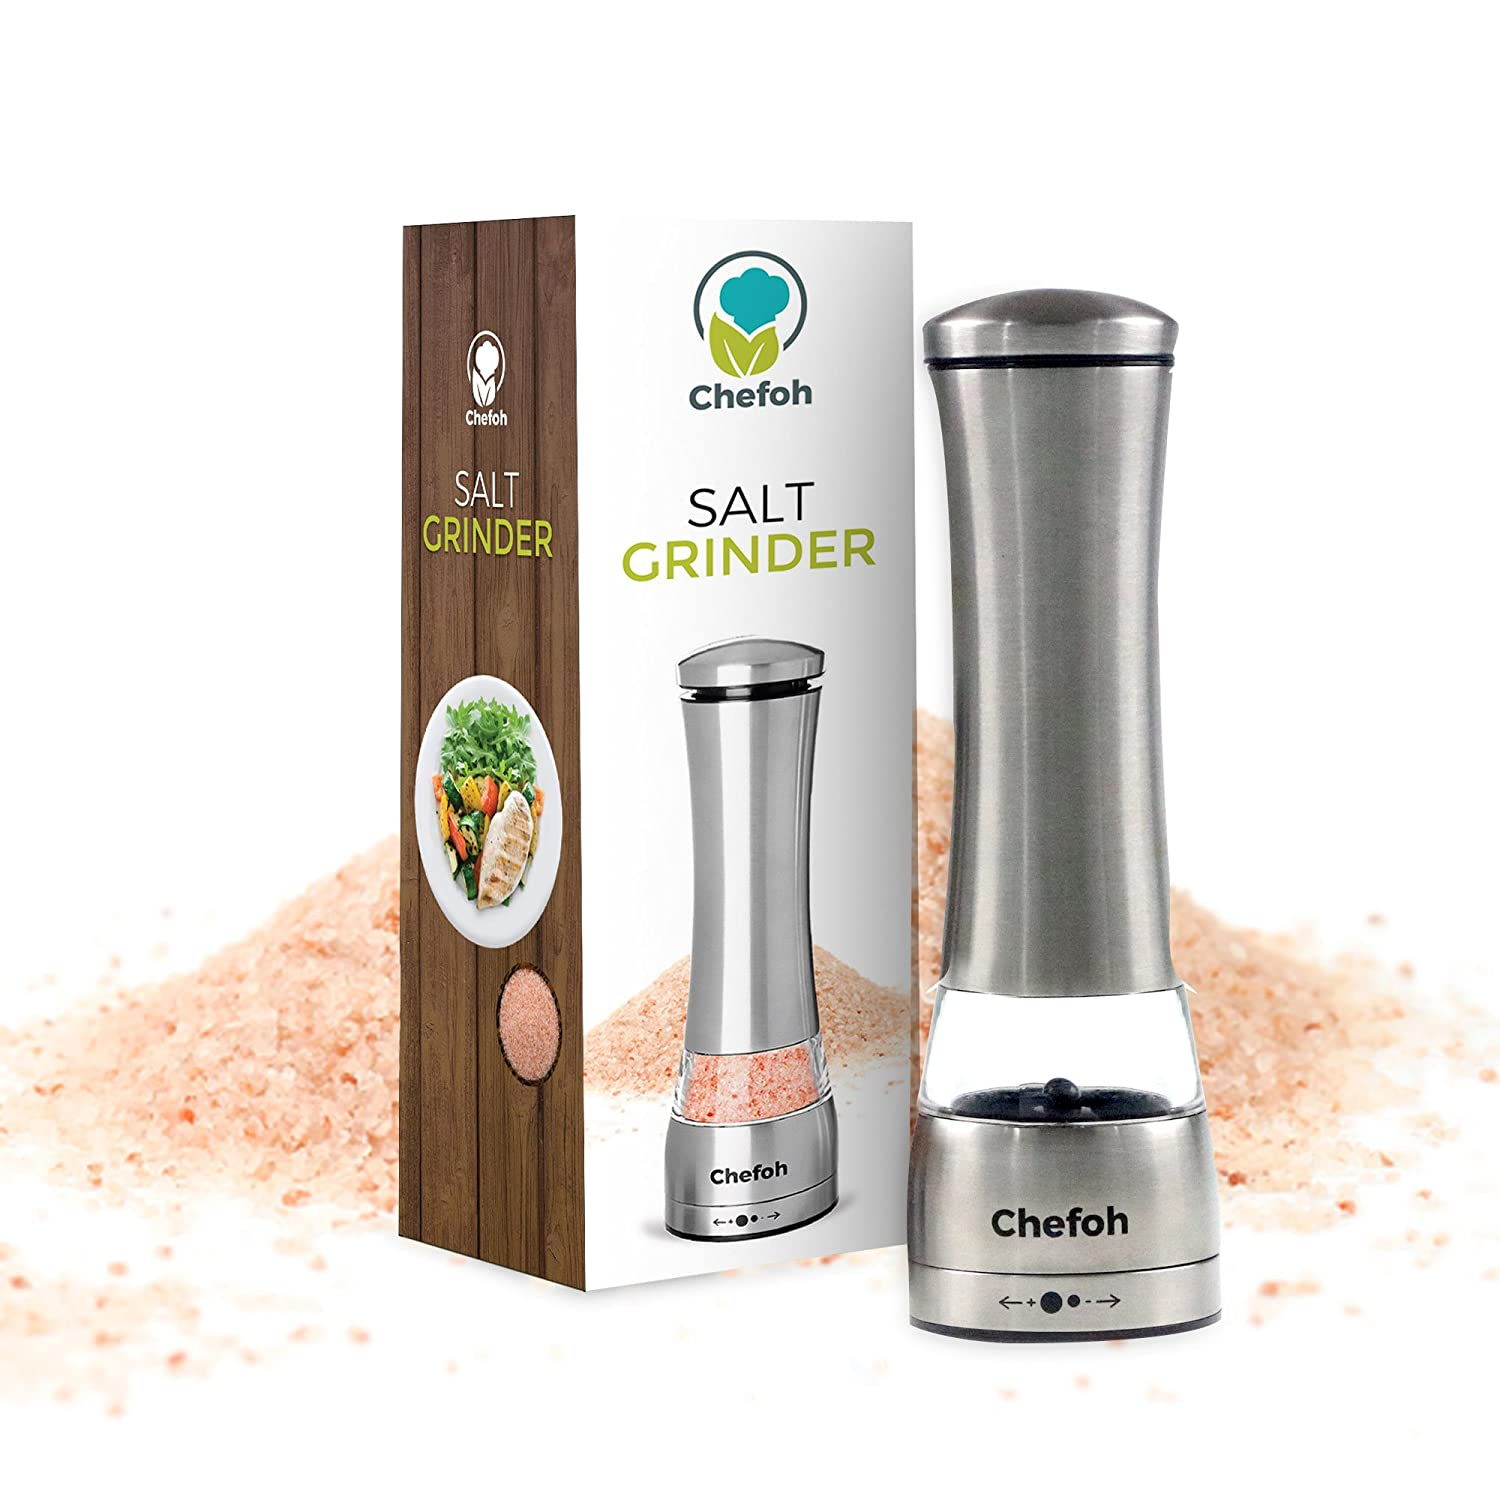 Premium Stainless Steel Salt & Pepper Grinder | Manual Salt and Pepper Mills with Ceramic Rotor | Adjustable Coarseness | Perfect for Himalayan, Sea, Kosher Salt & Peppercorns Chefoh CH-218